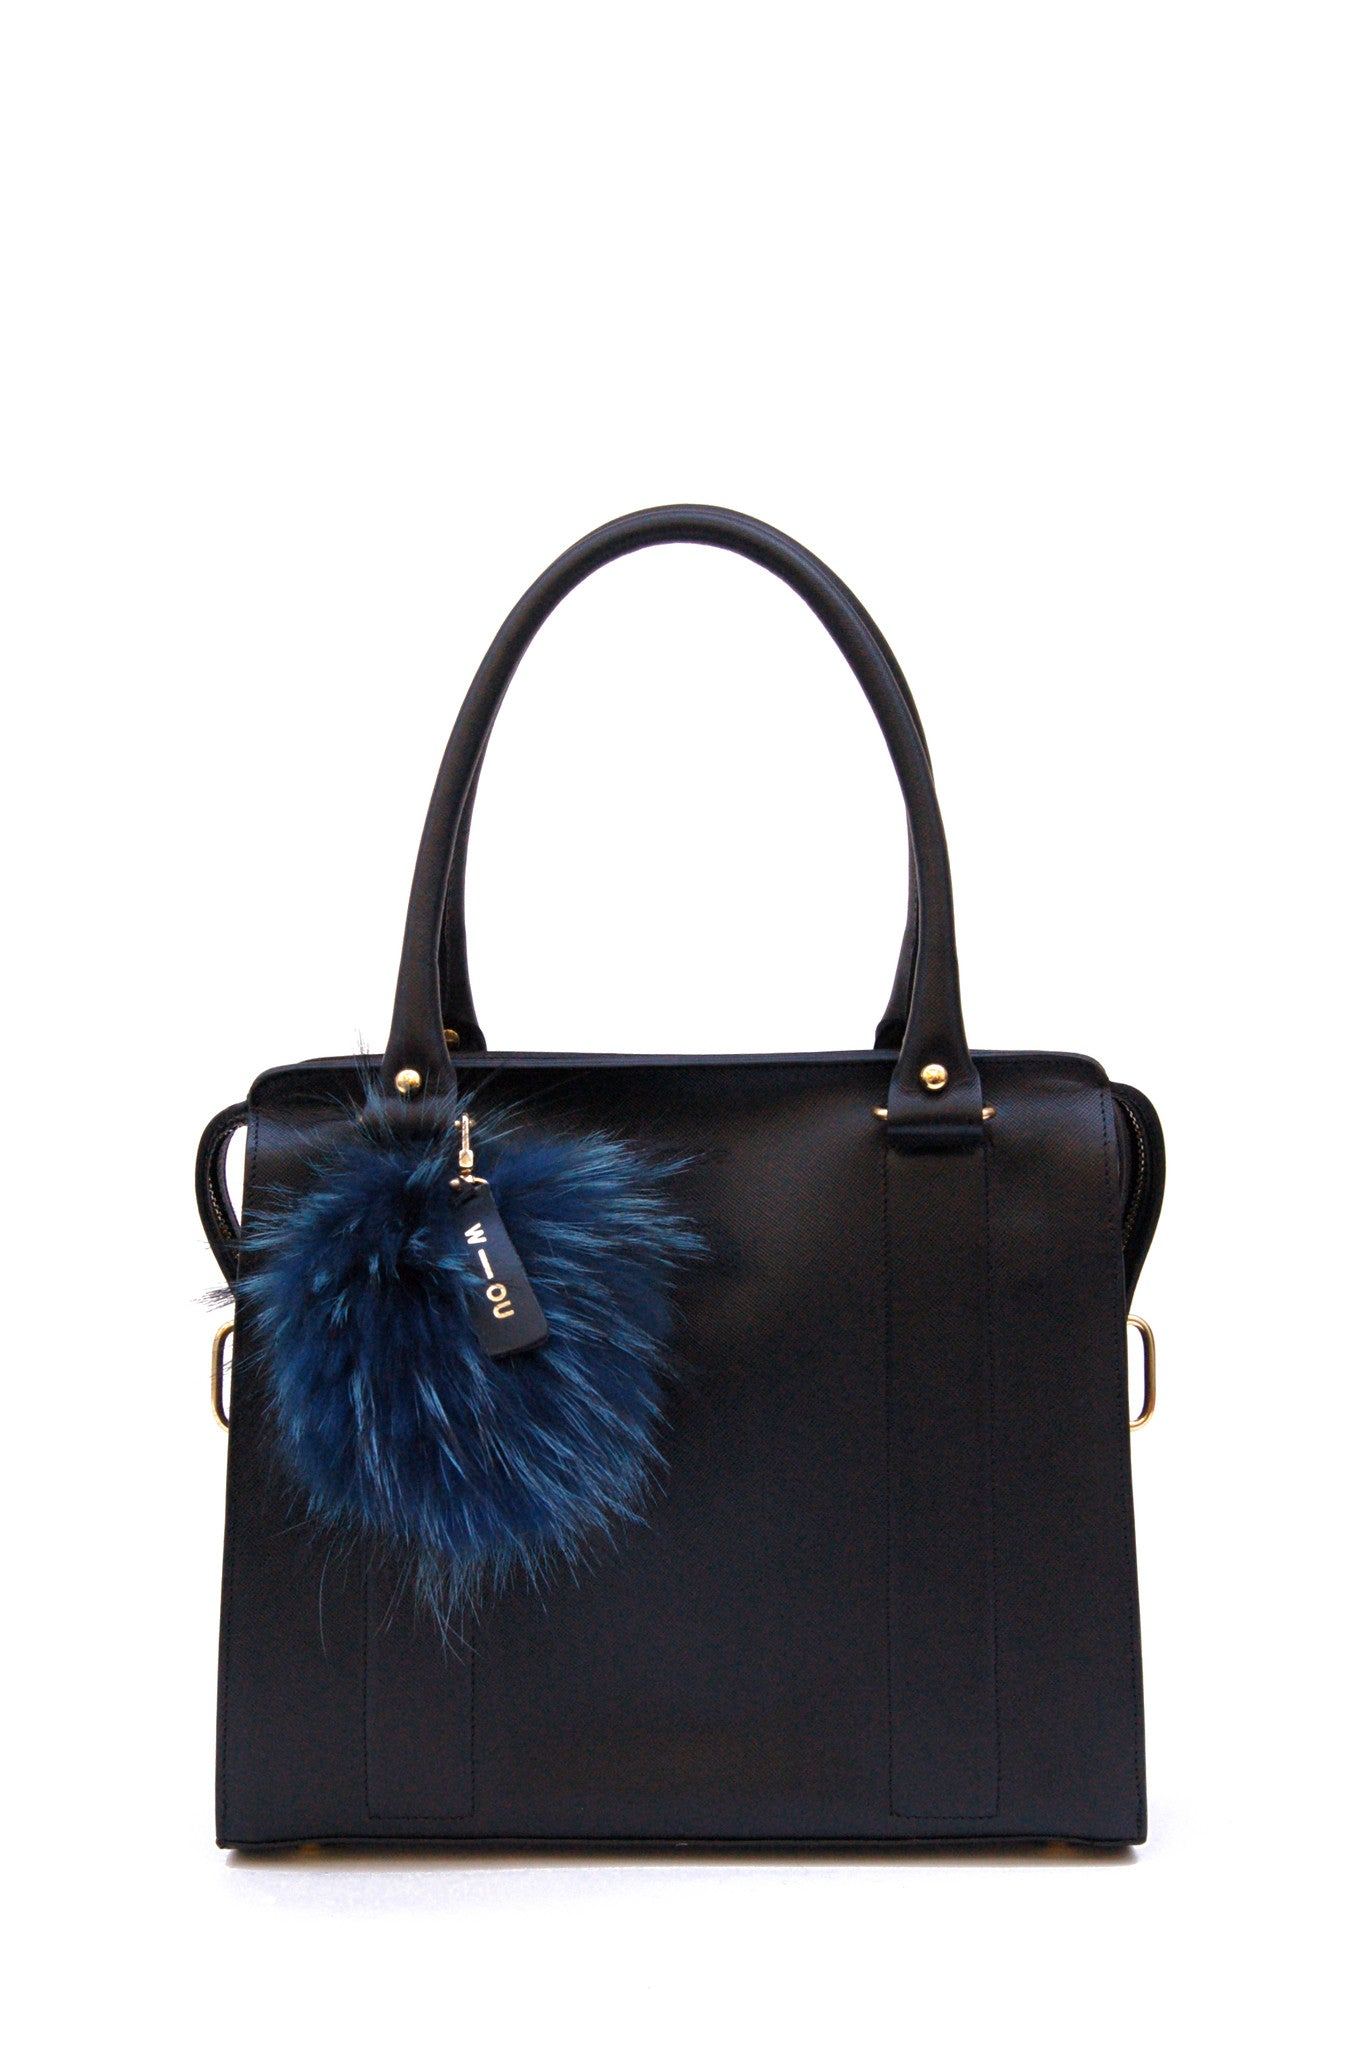 Wendee Ou: Pompom keyring tina turner blue | Accessories > Key rings,Accessories -  Hiphunters Shop